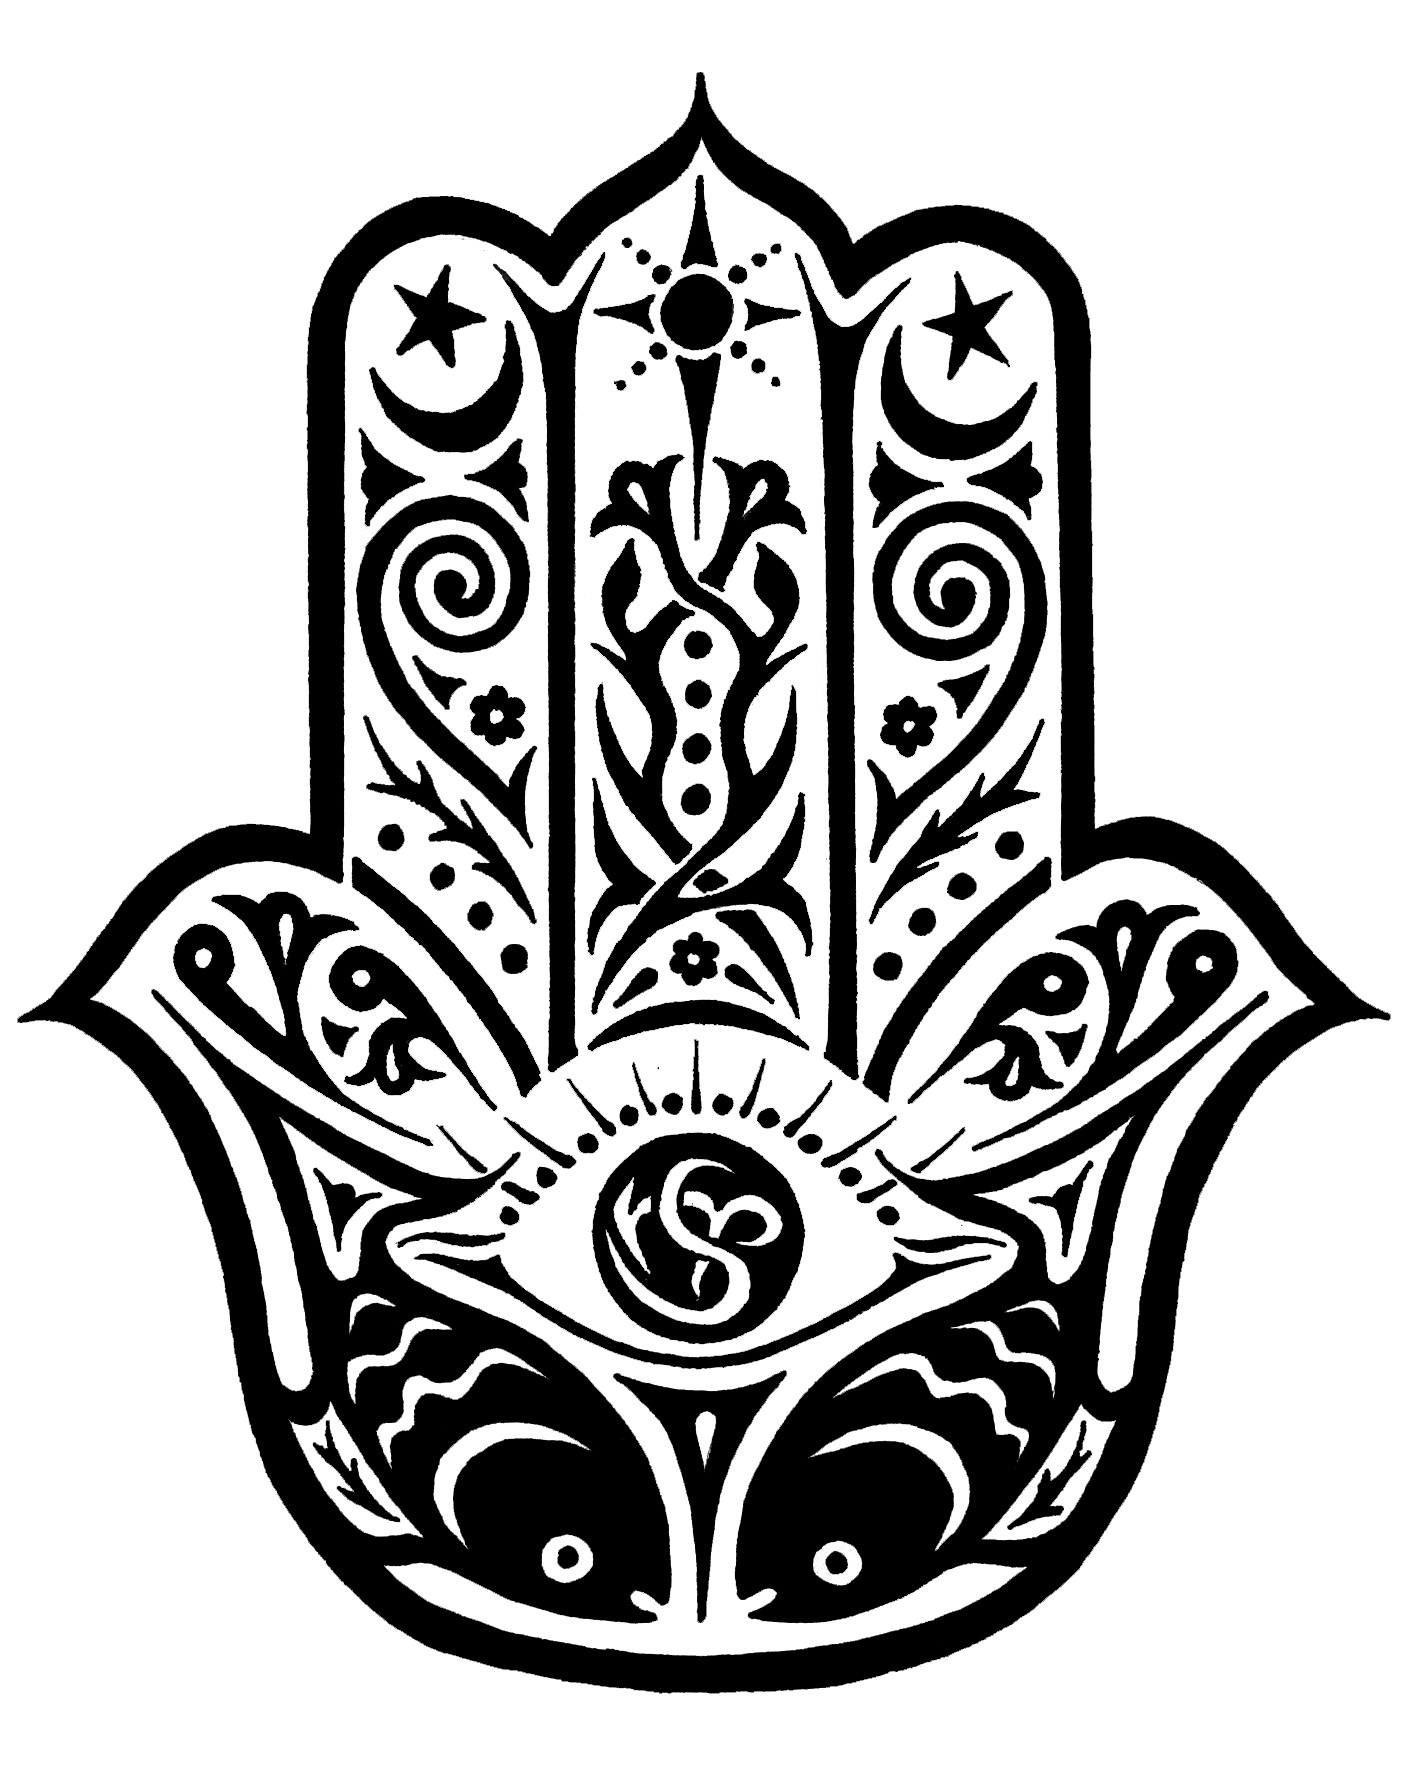 Hamsa Hand Tumblr Coloring Pages Coloring Pages